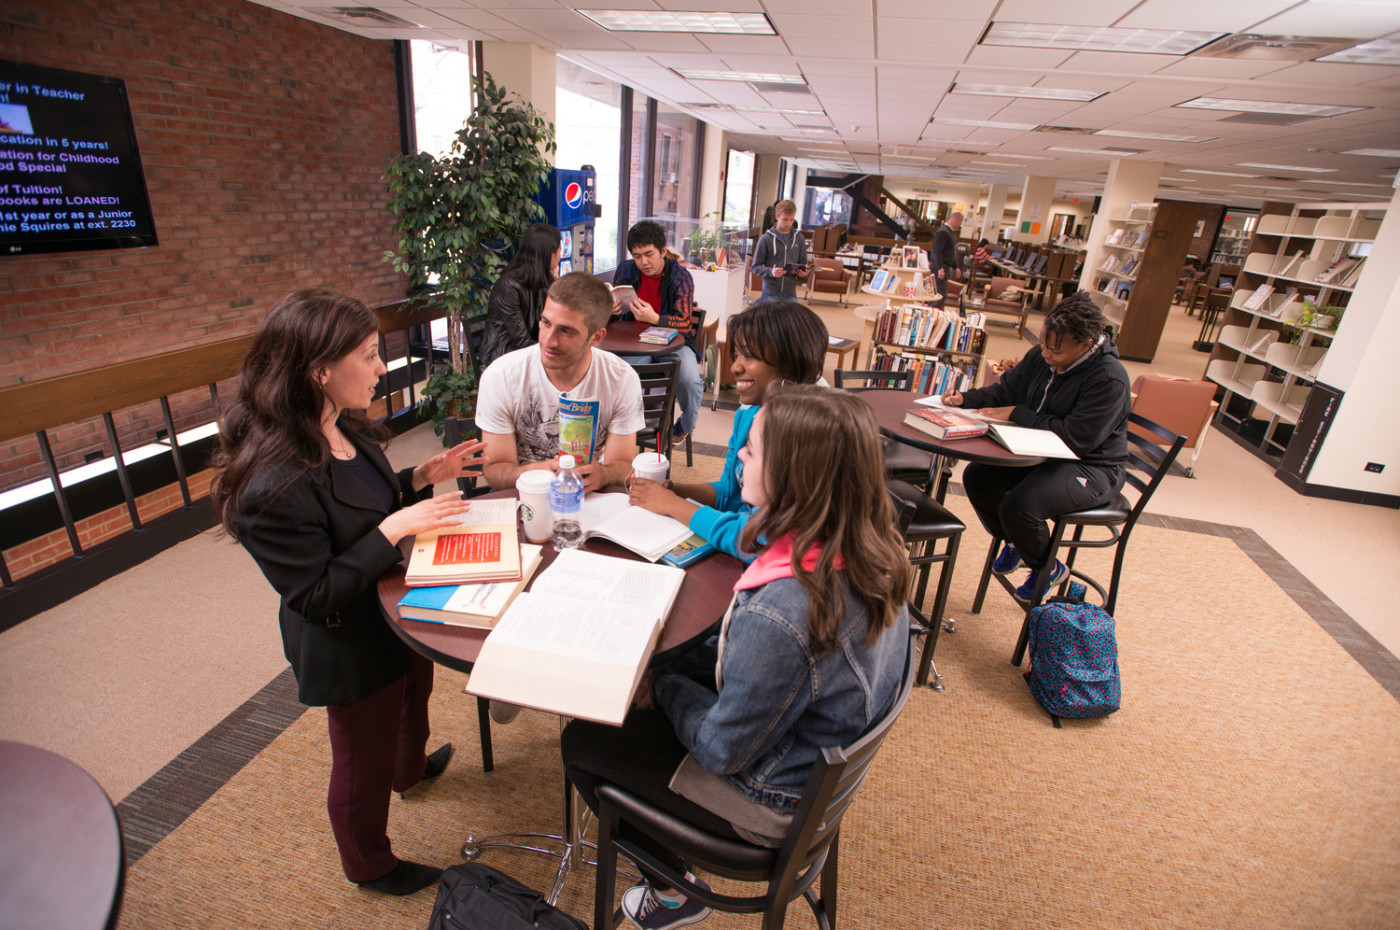 Breakout area in the library